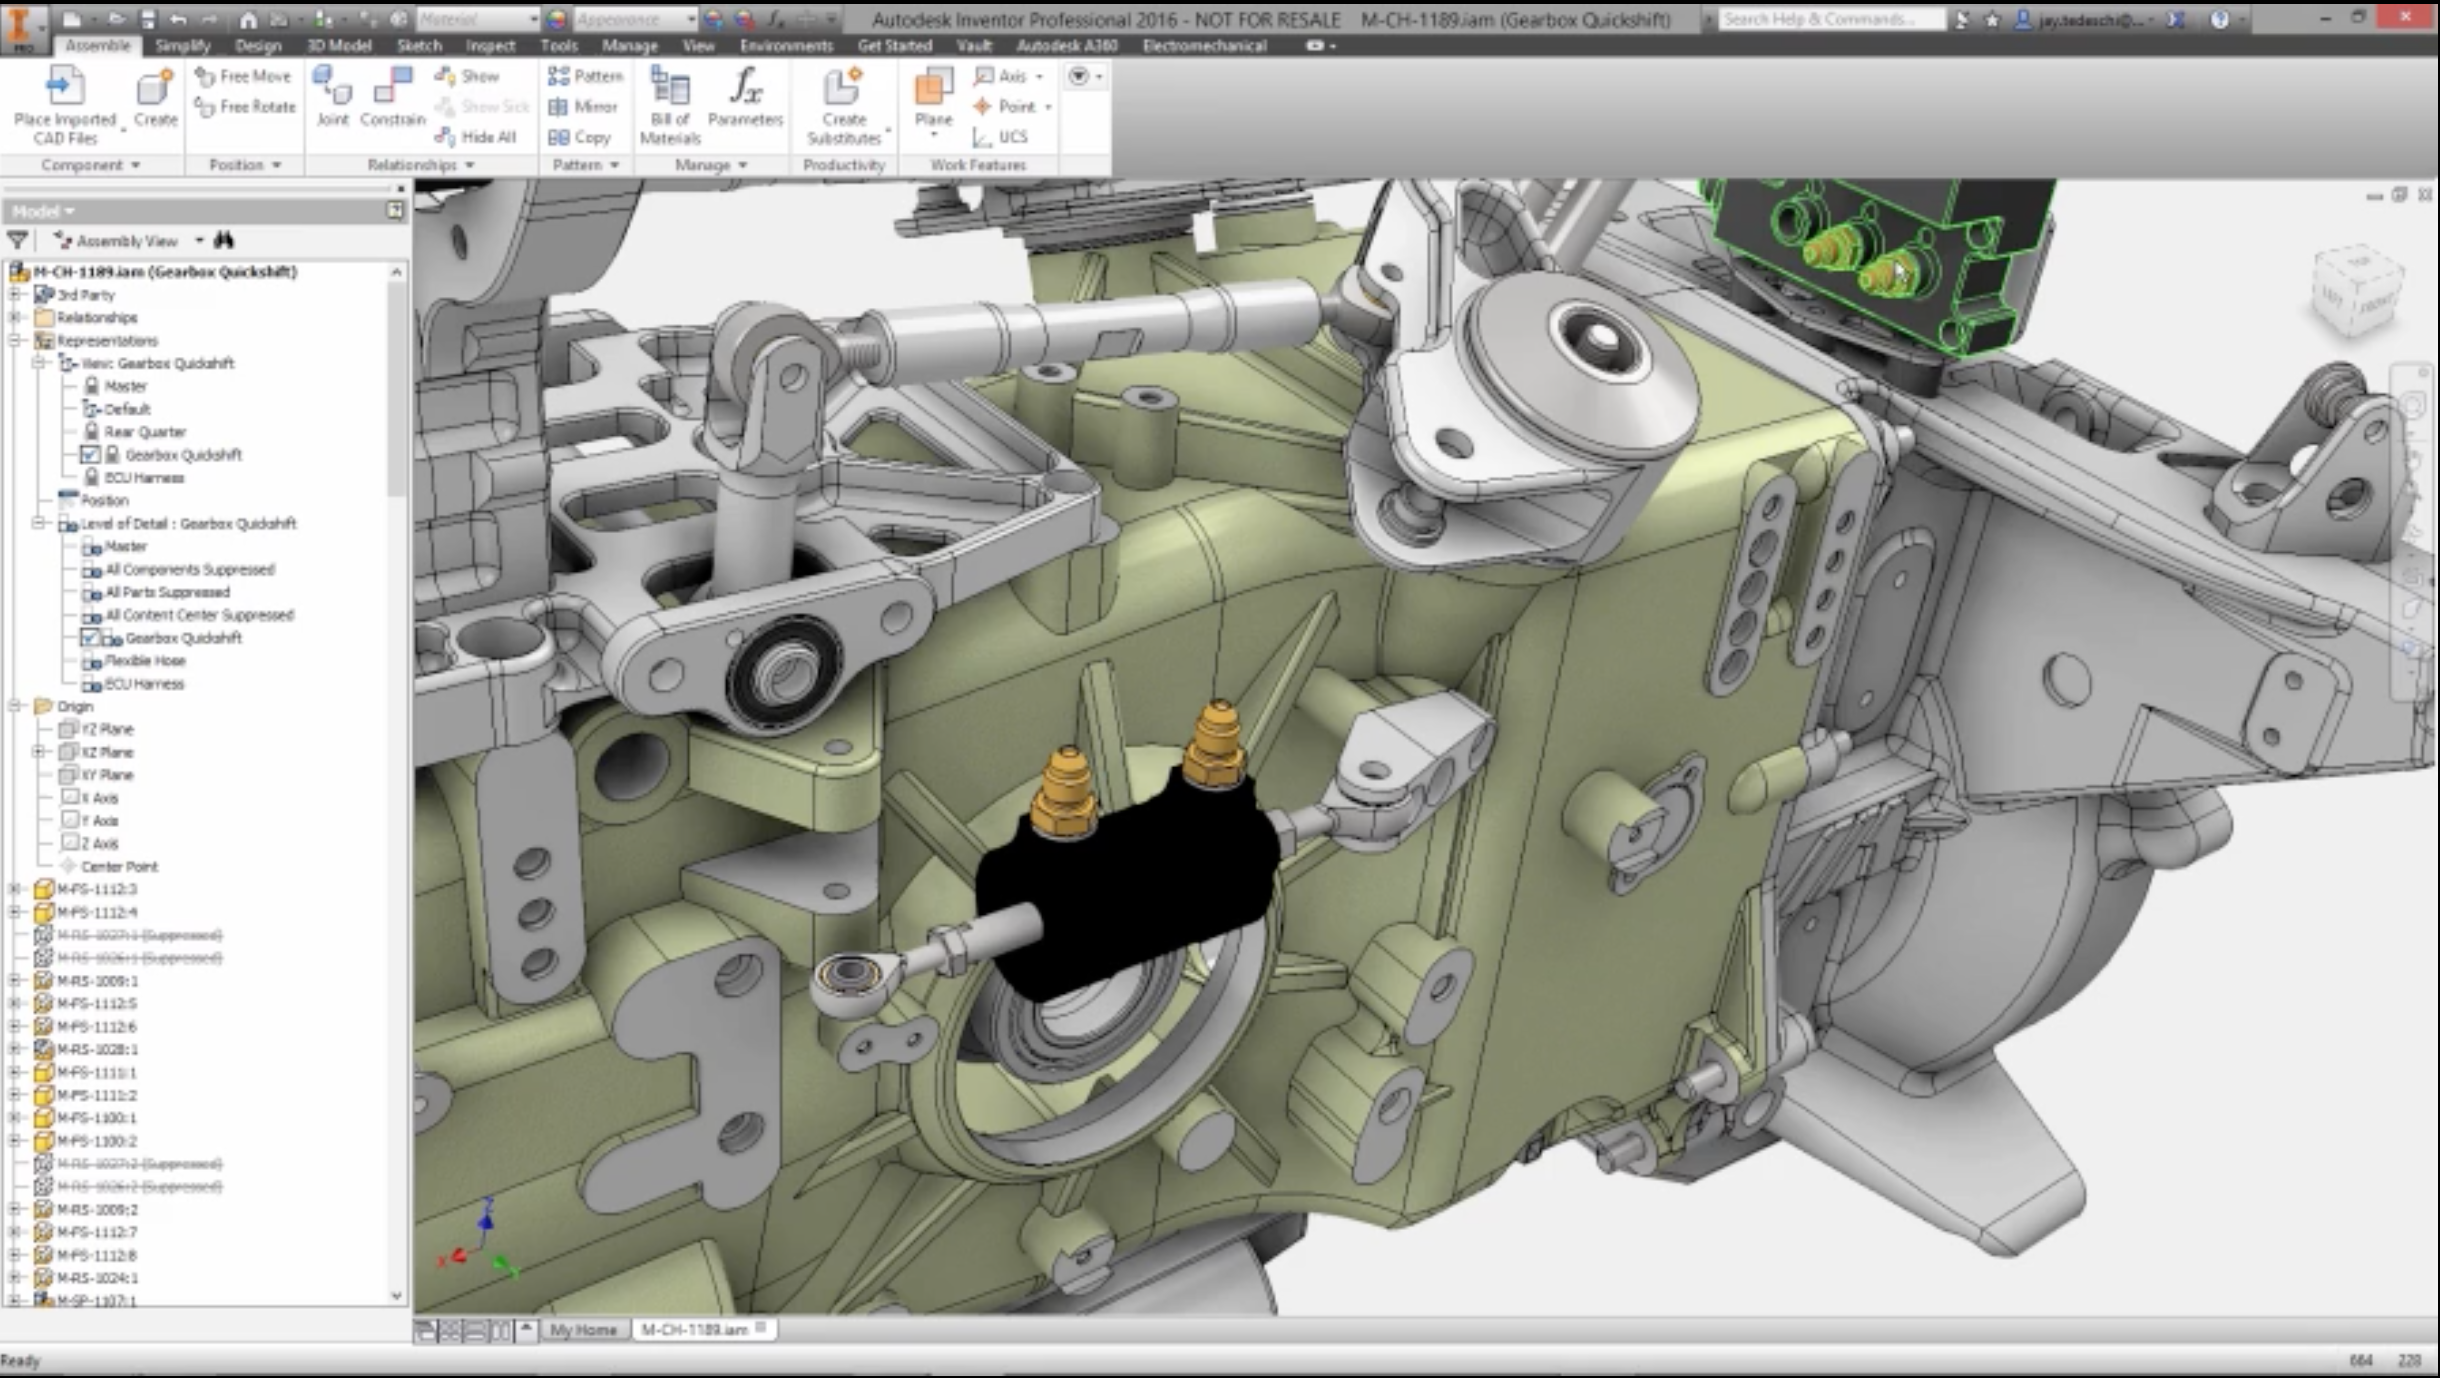 Autodesk Inventor Free Download: Is There a Full Free Version? | All3DP